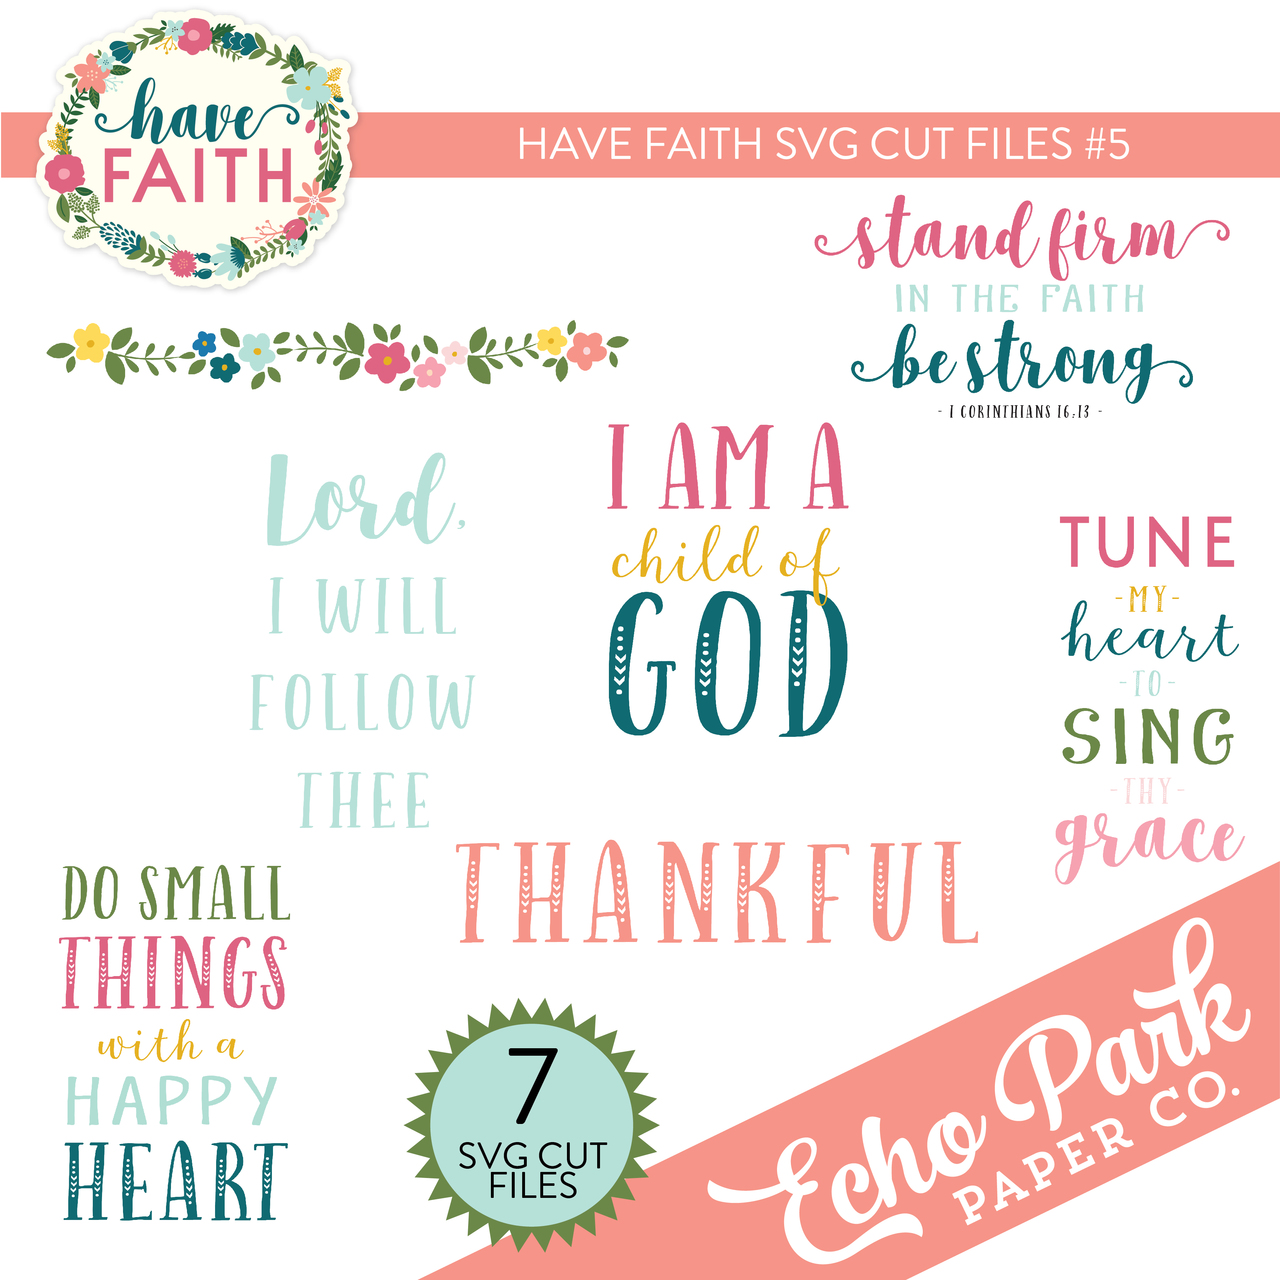 Have Faith Svg Cut Files 5 Snap Click Supply Co